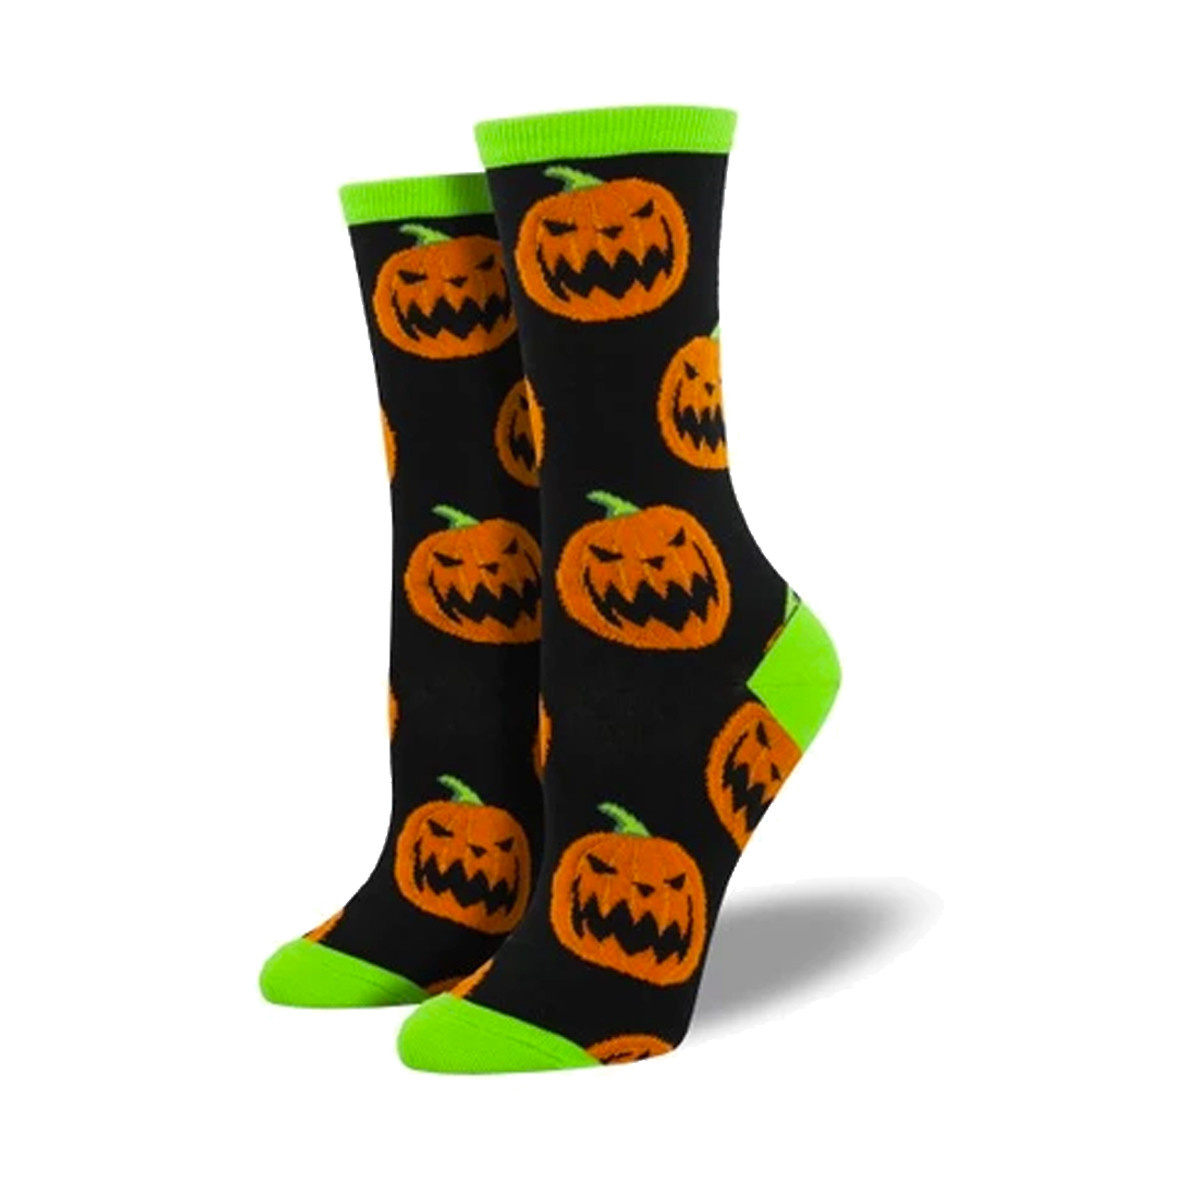 Socksmith Socksmith Women's Cotton Blend Socks Halloween Pumpkins